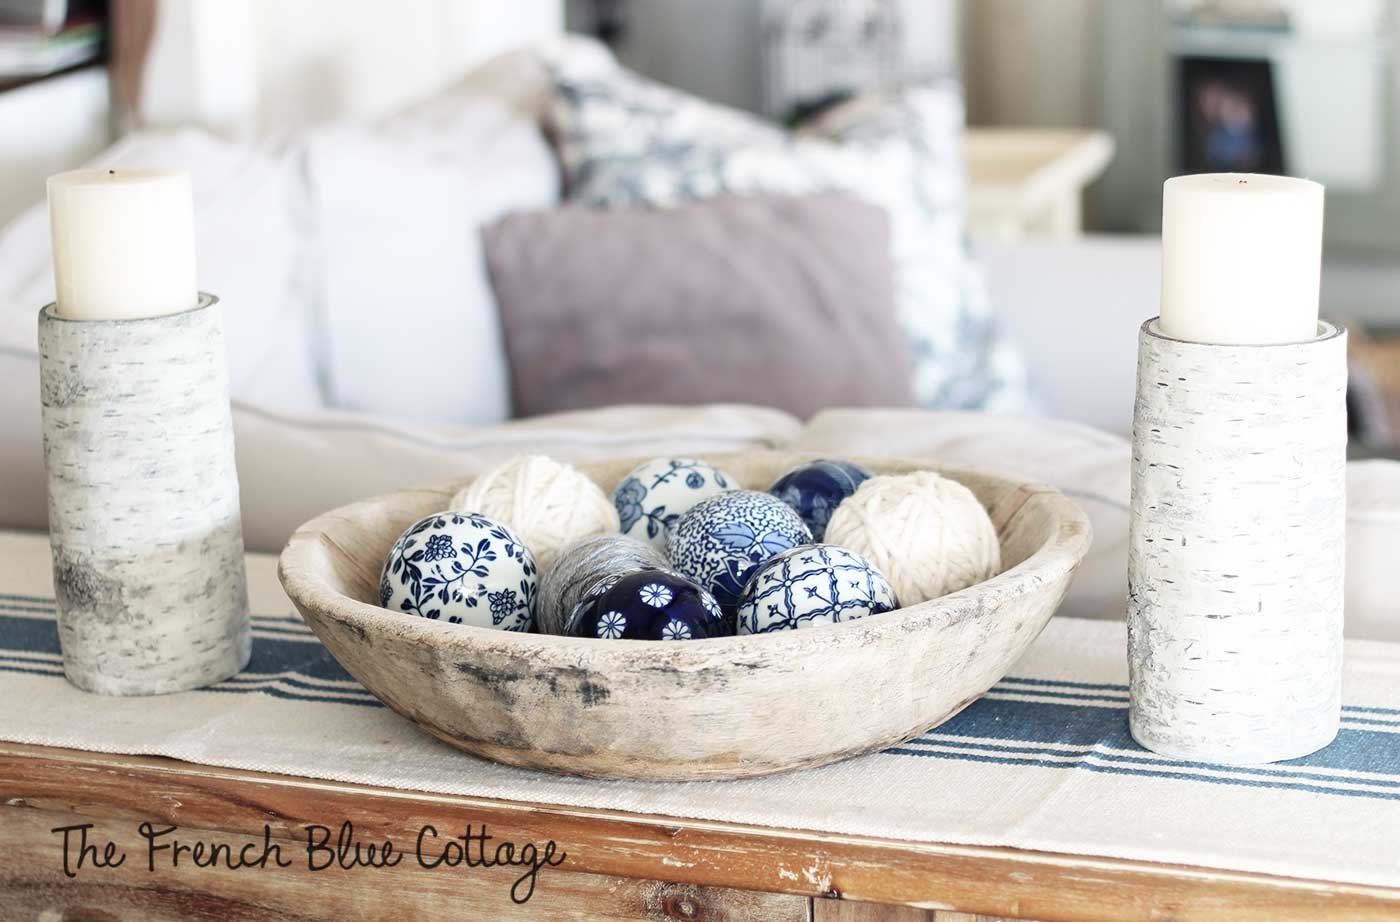 Textural winter vignette with yarn, birch, and blue ceramic.